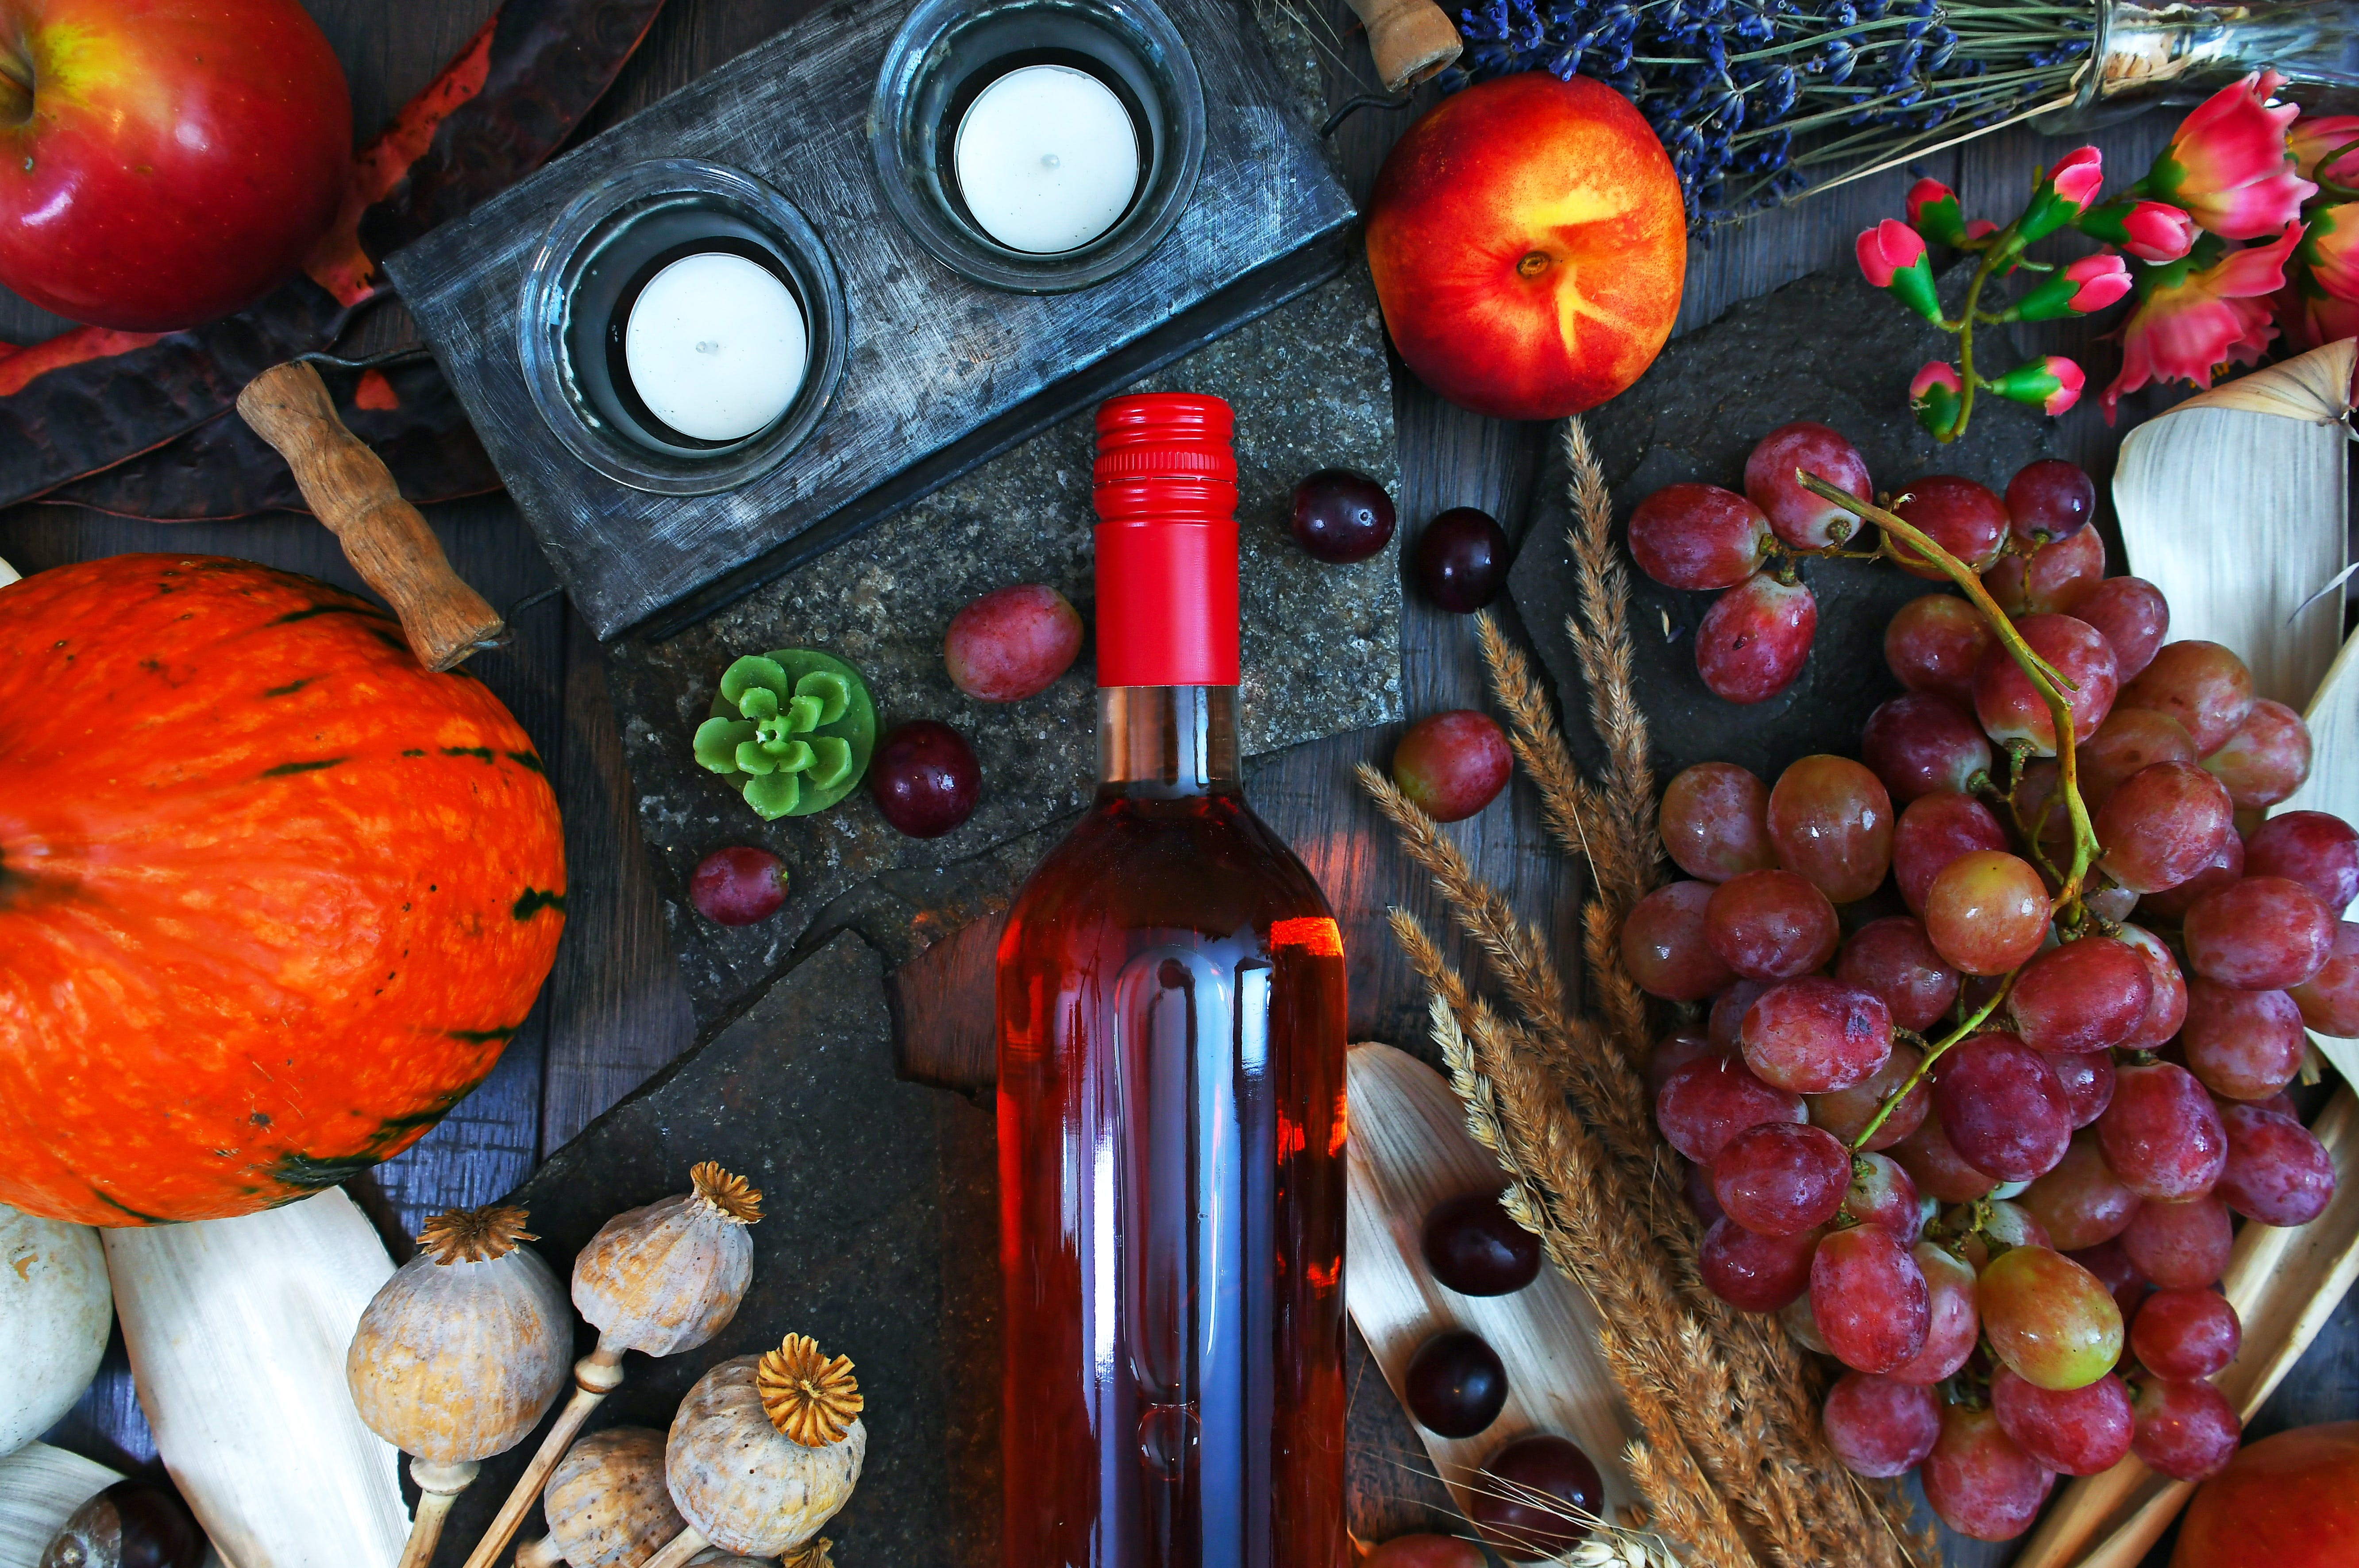 Clear Glass Wine Bottle Surrounded by Fruits Top View Photography